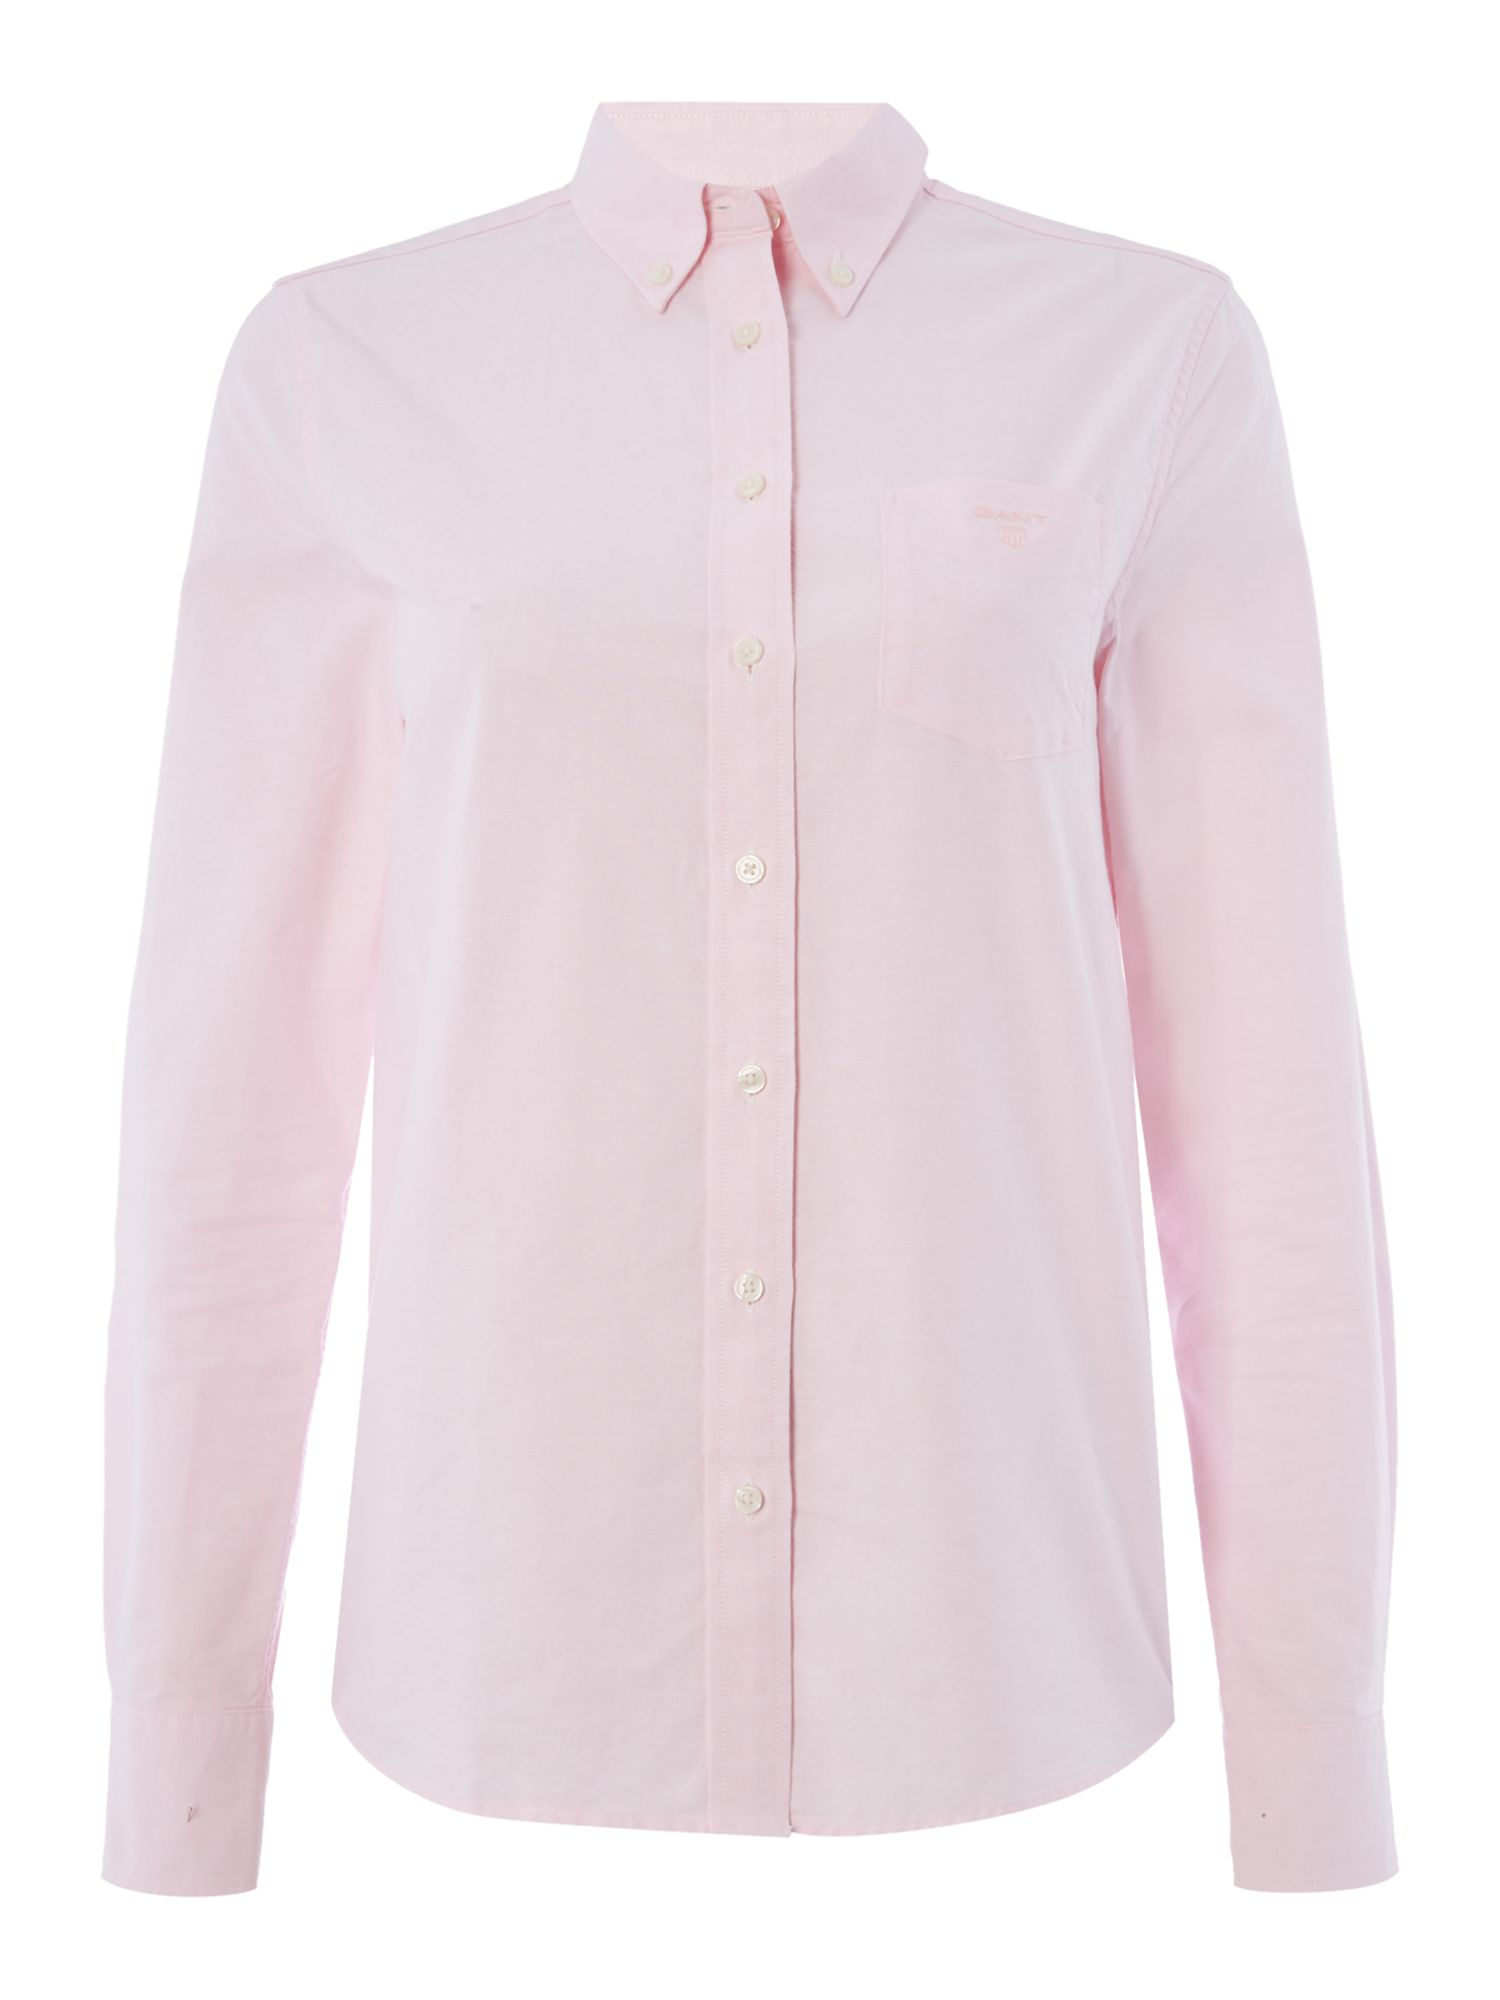 Gant The Perfect Oxford Shirt, Light Pink